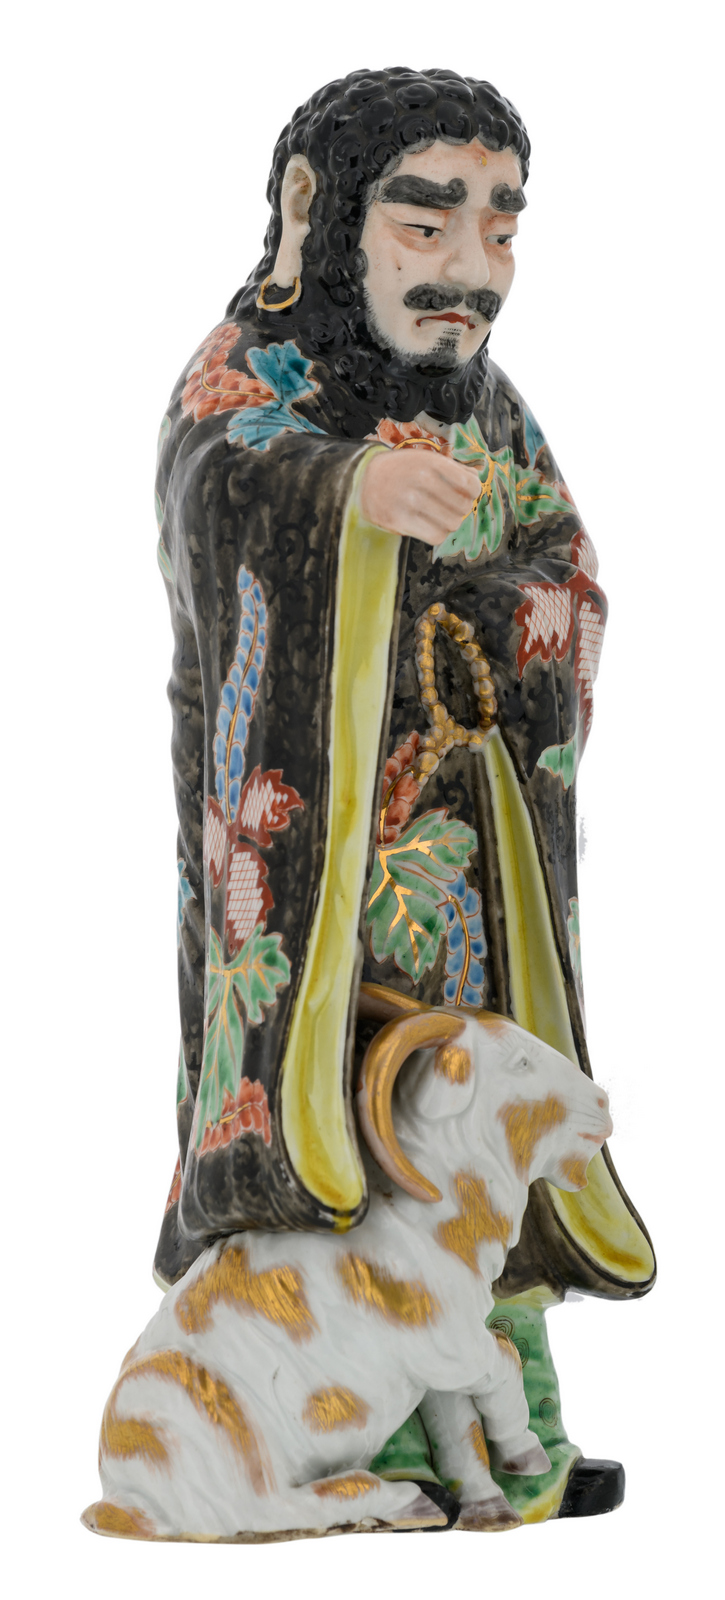 A Chinese polychrome decorated figure depicting a deity and a goat, H 30,5 cm